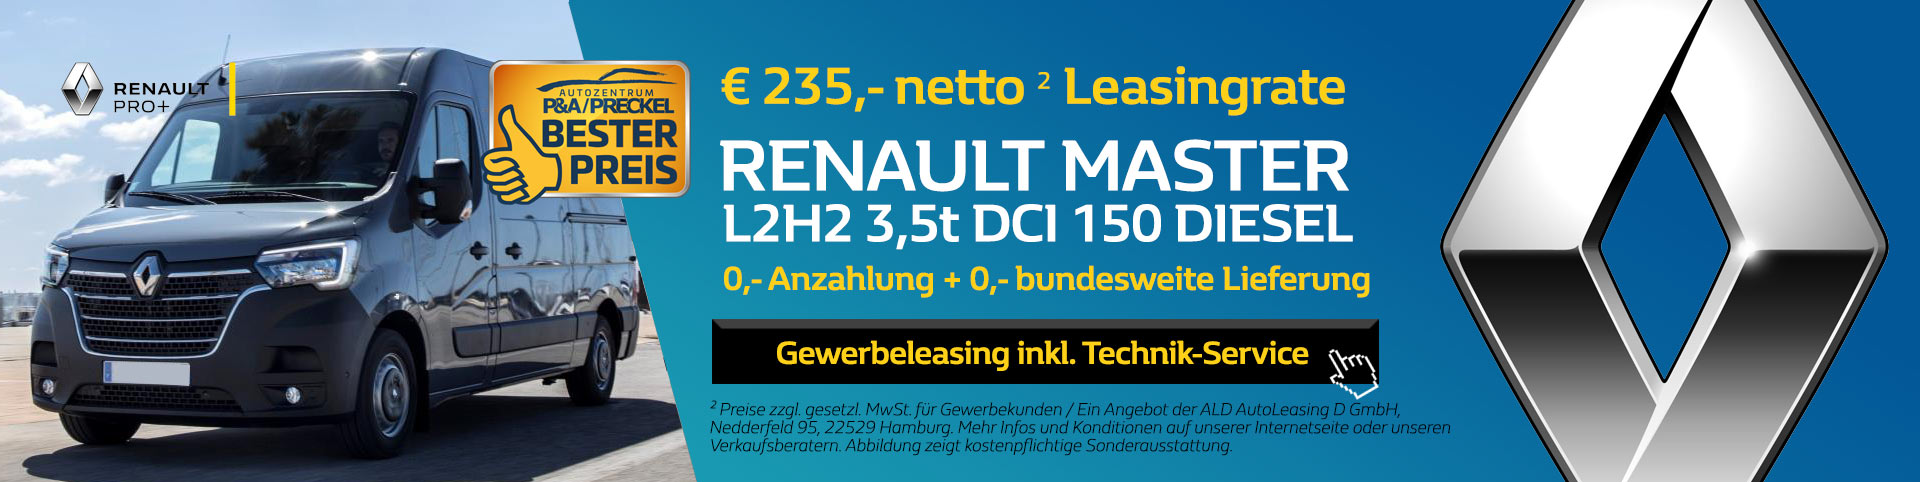 Neuer Renault Master L2H2 Leasing